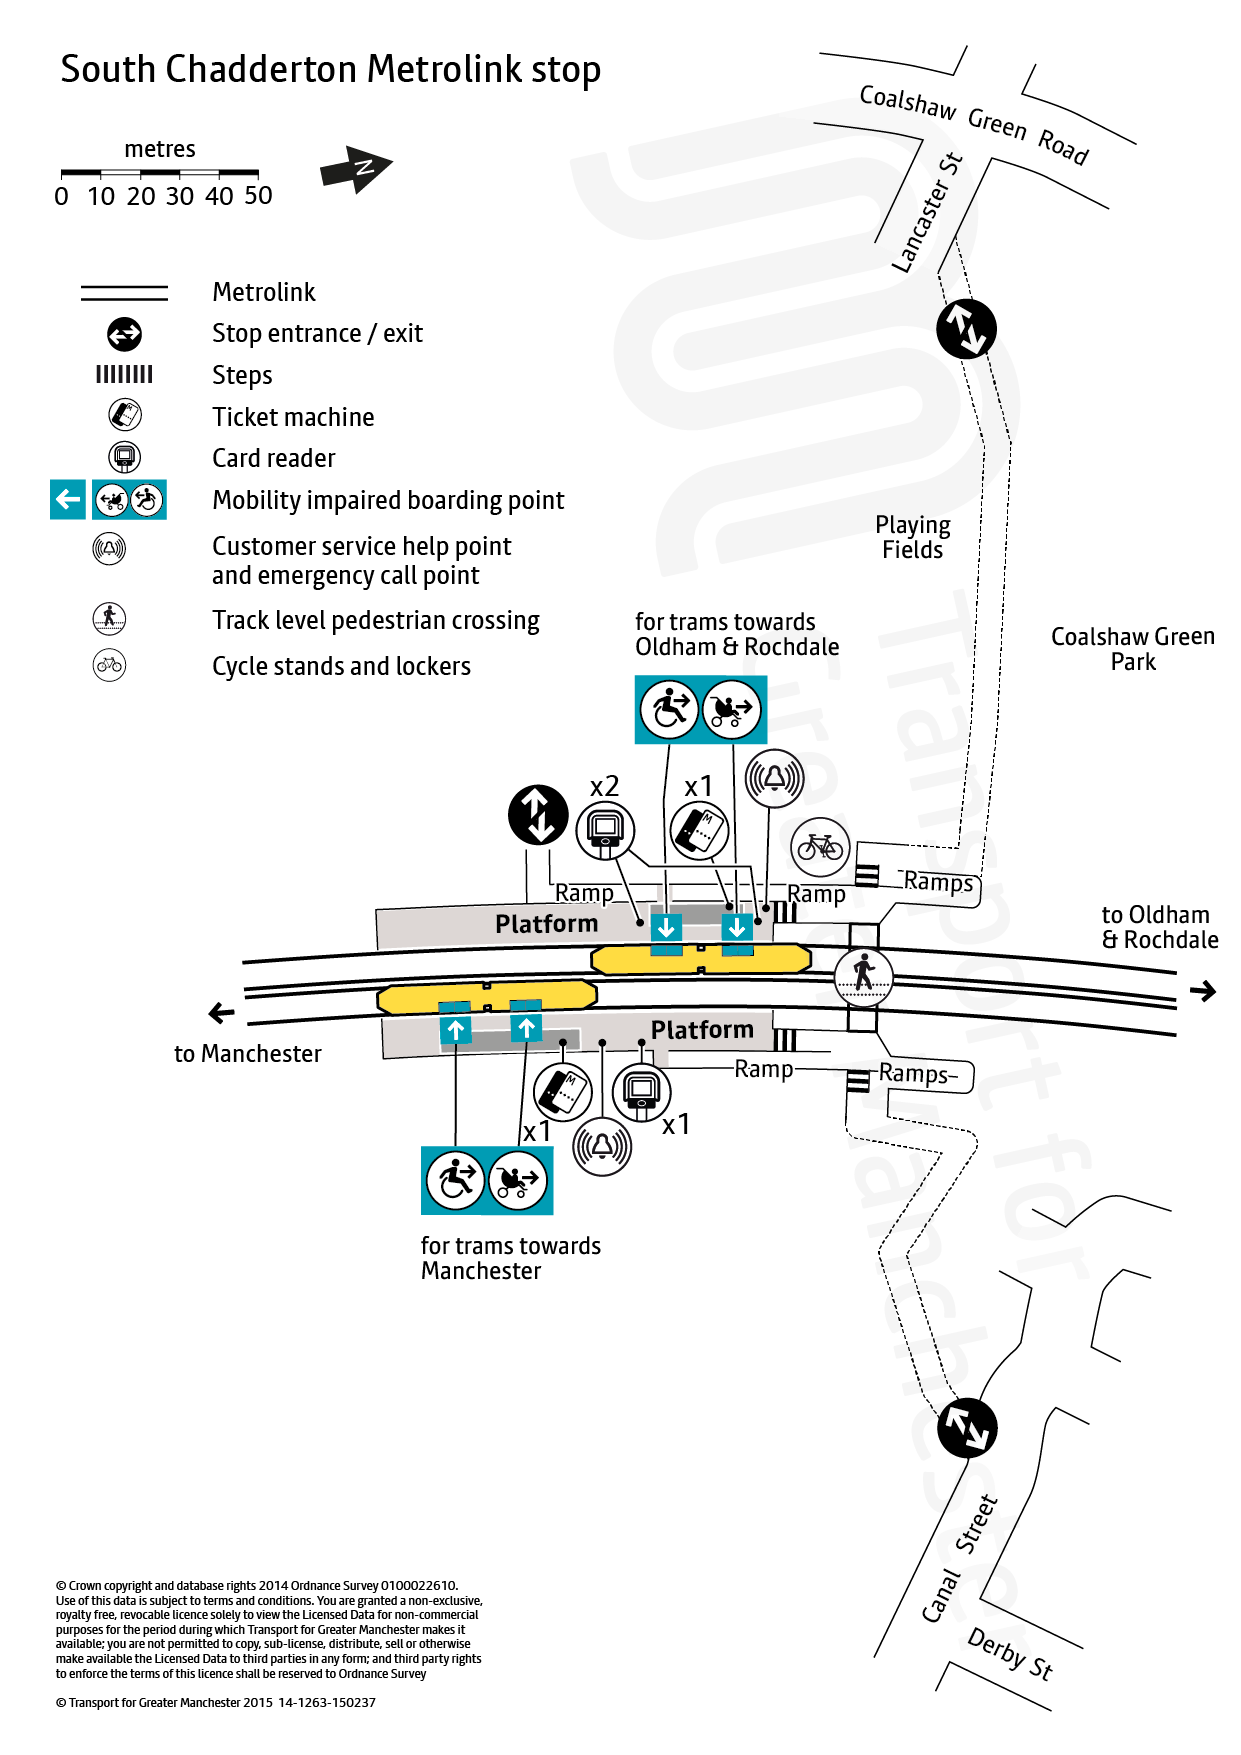 Stop map for South Chadderton tram stop